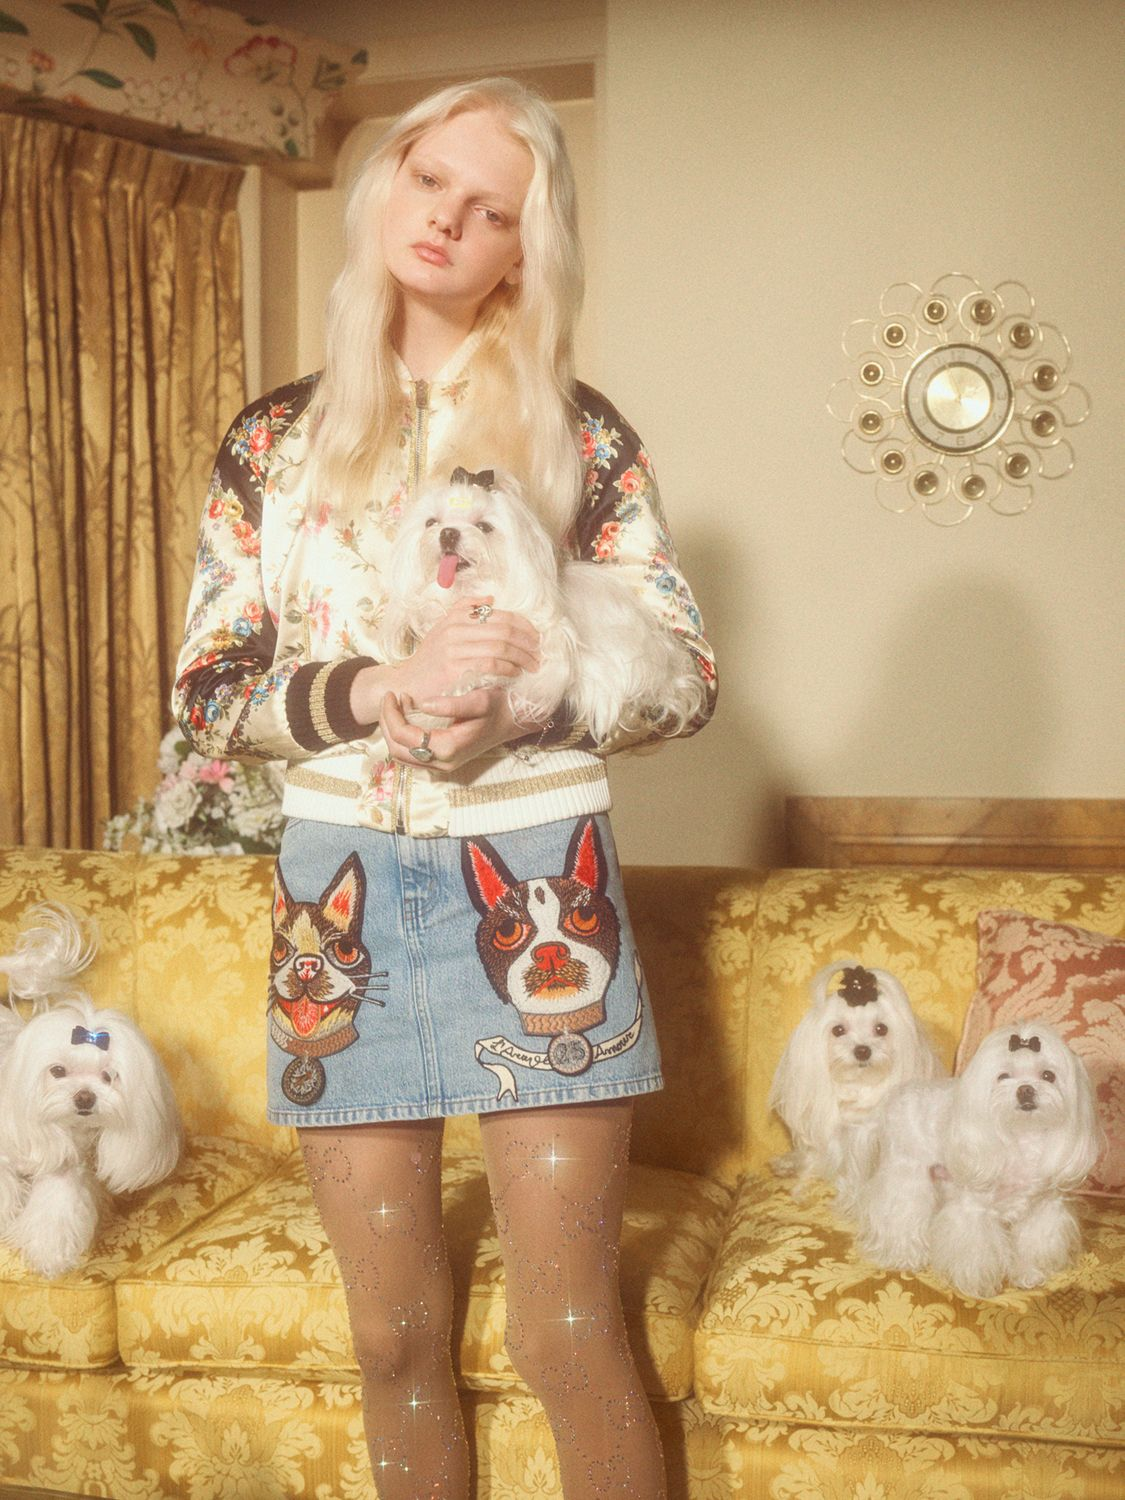 d05bdf41e Gucci Celebrates 2018, The Year of the Dog with New Collection. Petra  Collins photographs models Ellia Sophia Coggins, Unia Pakhomova, Gao Jie,  Dylan Xue, ...